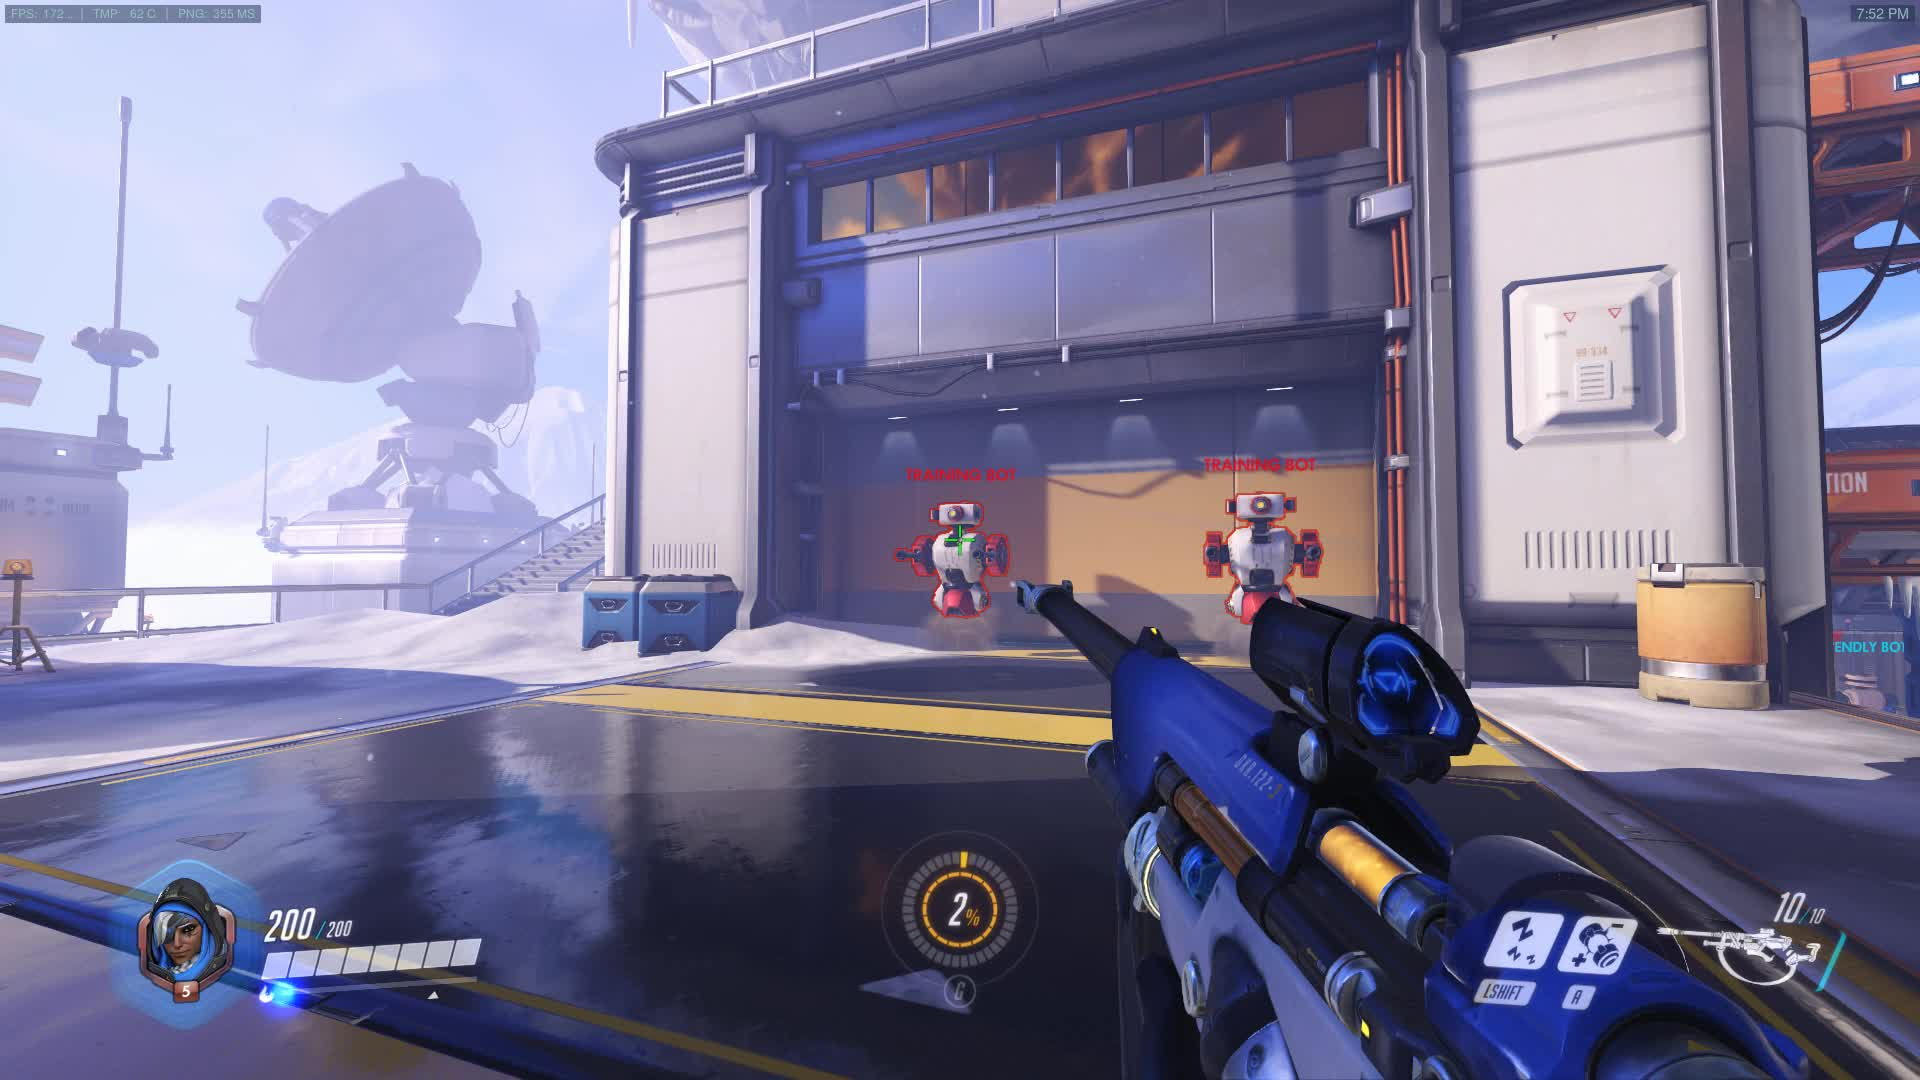 Competitiveoverwatch, Overwatch 03.08.2017 - 19.52.19.02 GIFs